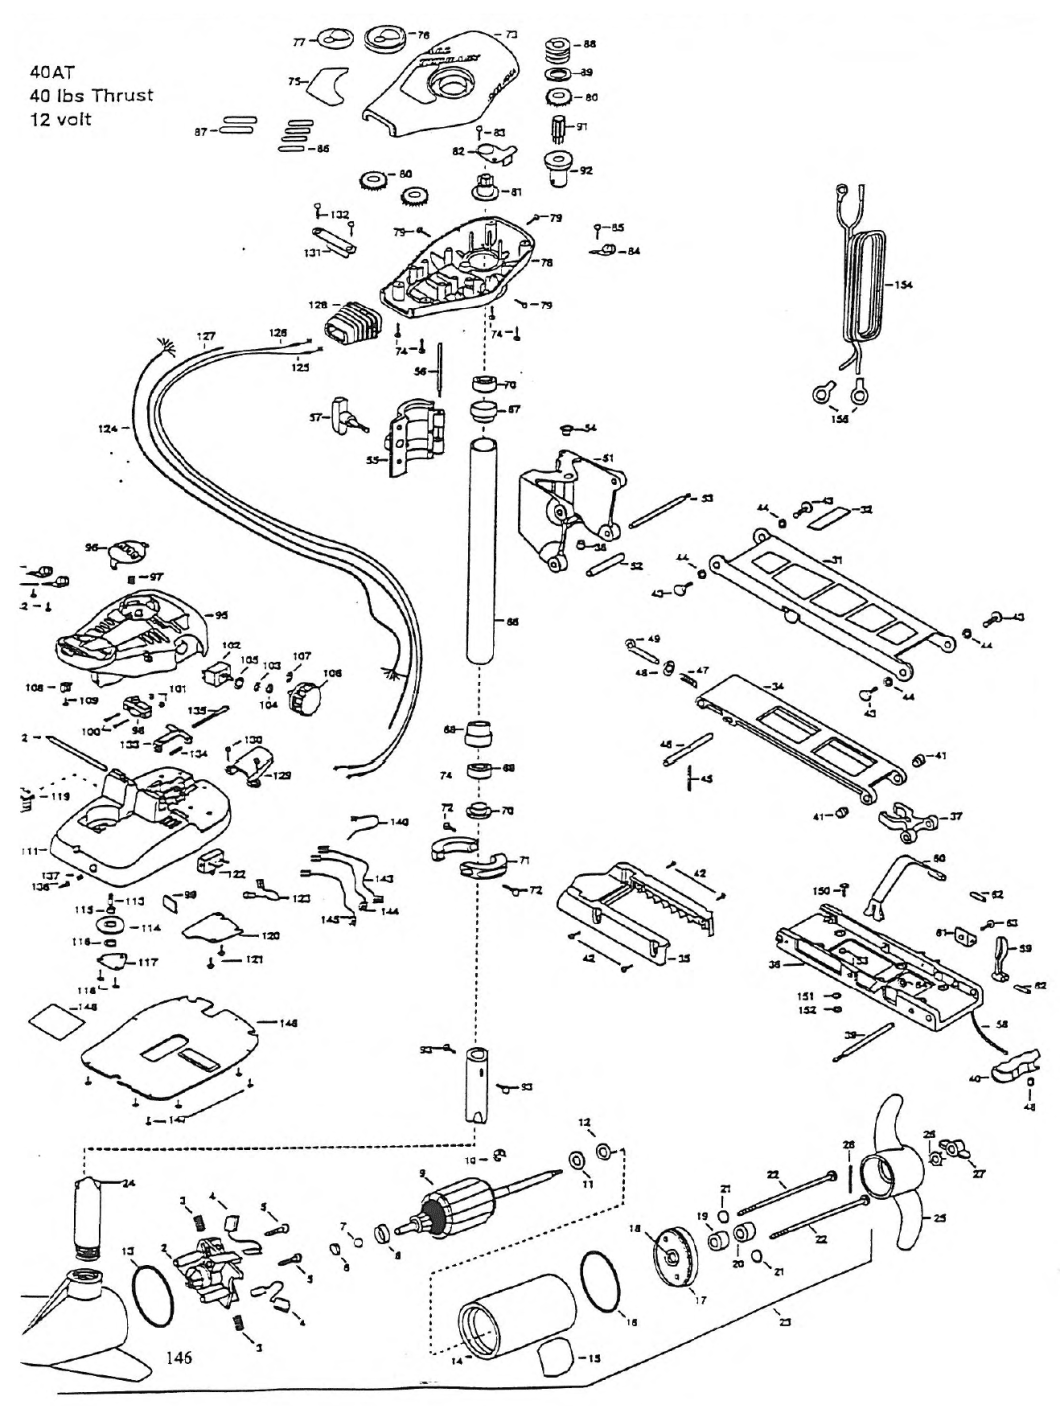 Minn Kota Trolling Motor Schematics Data Wiring Diagrams